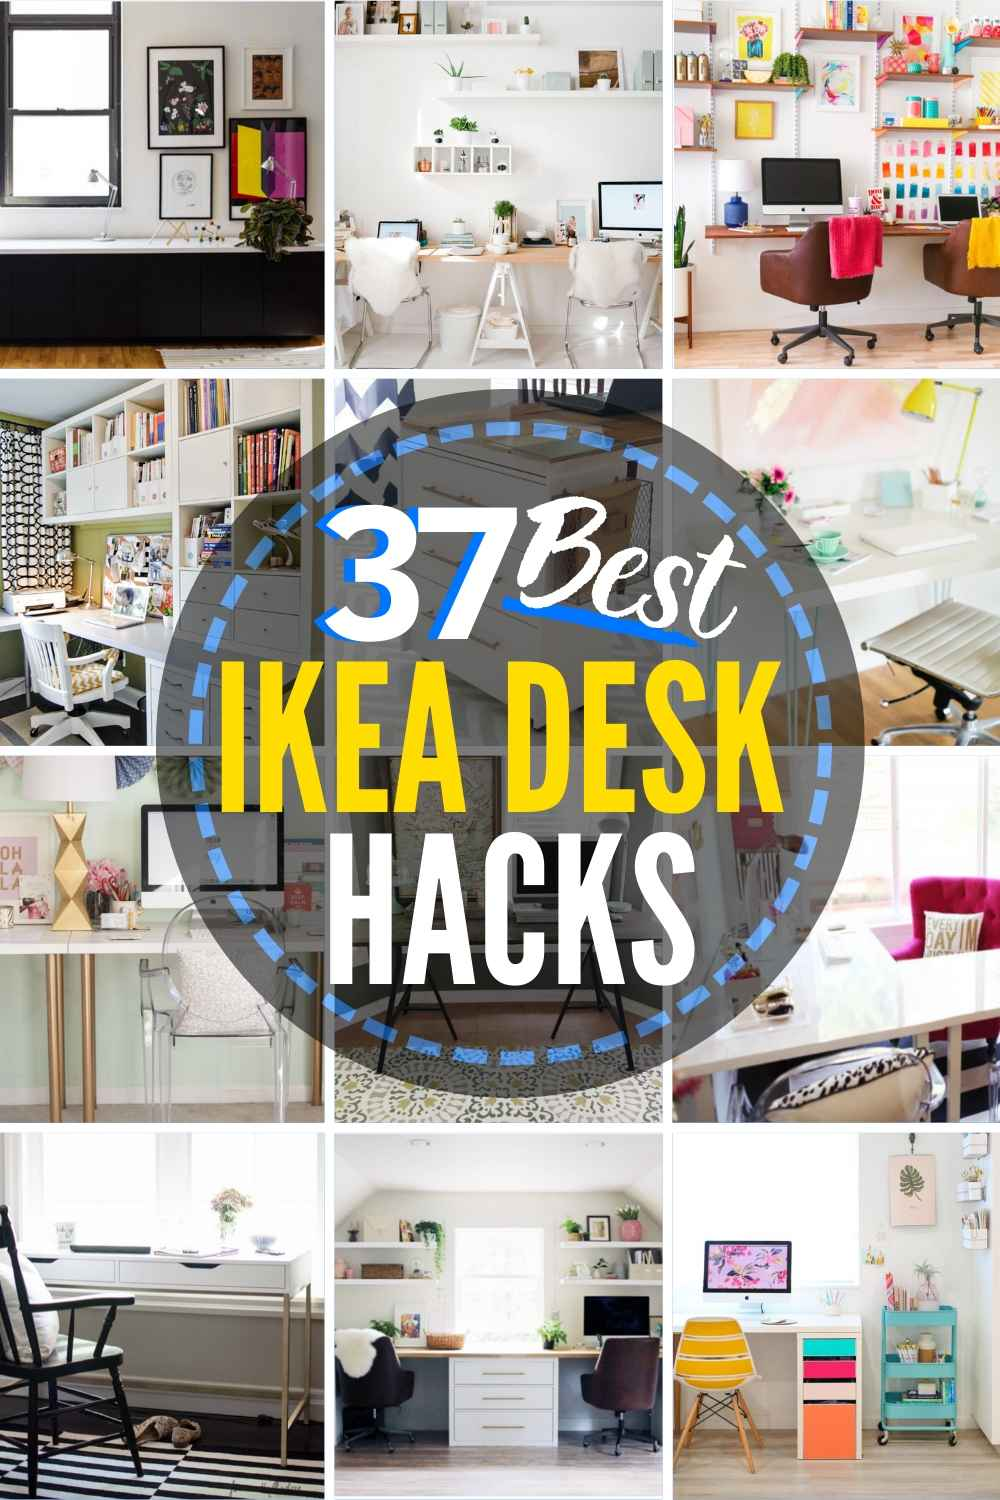 37 Outstanding IKEA desk hacks!